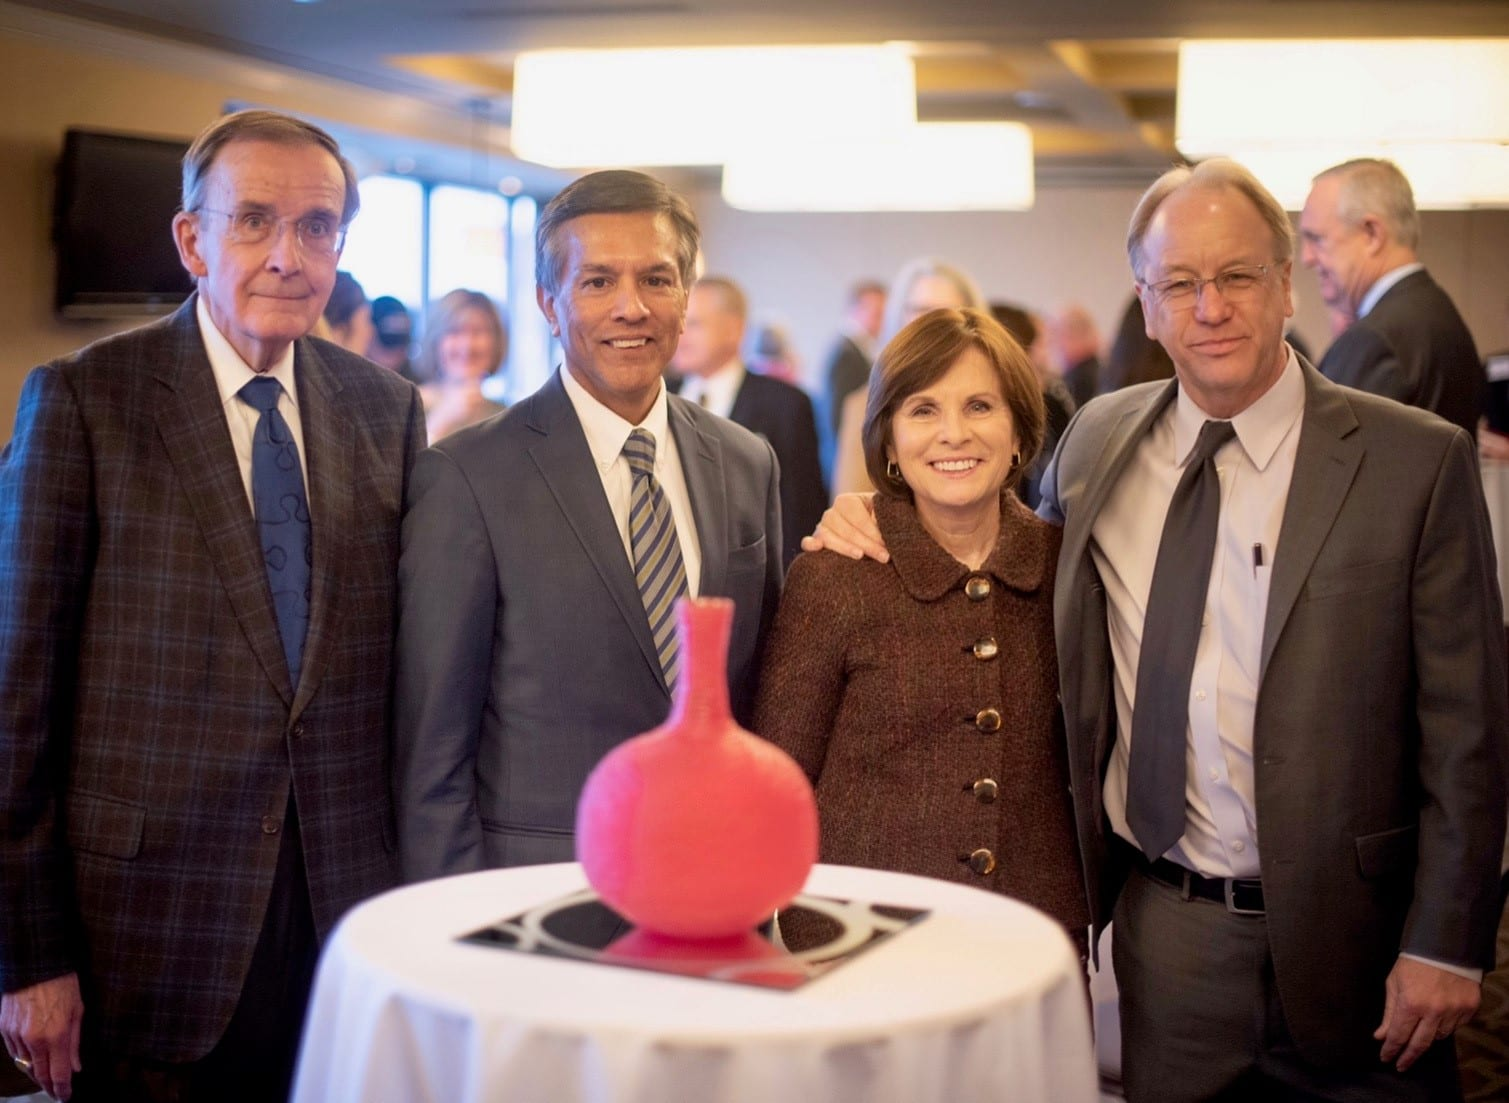 Moira Carlsted stands with the John L. Krauss award--a handmade glass sculpture from local artist Ben Johnson--at the O'Neill School's Champions of Public Policy event. Carlstedt is pictured below (L-R) with John Krauss, PPI director Thomas Guevara, and Brain Payne, President and CEO of the Central Indiana Community Foundation.